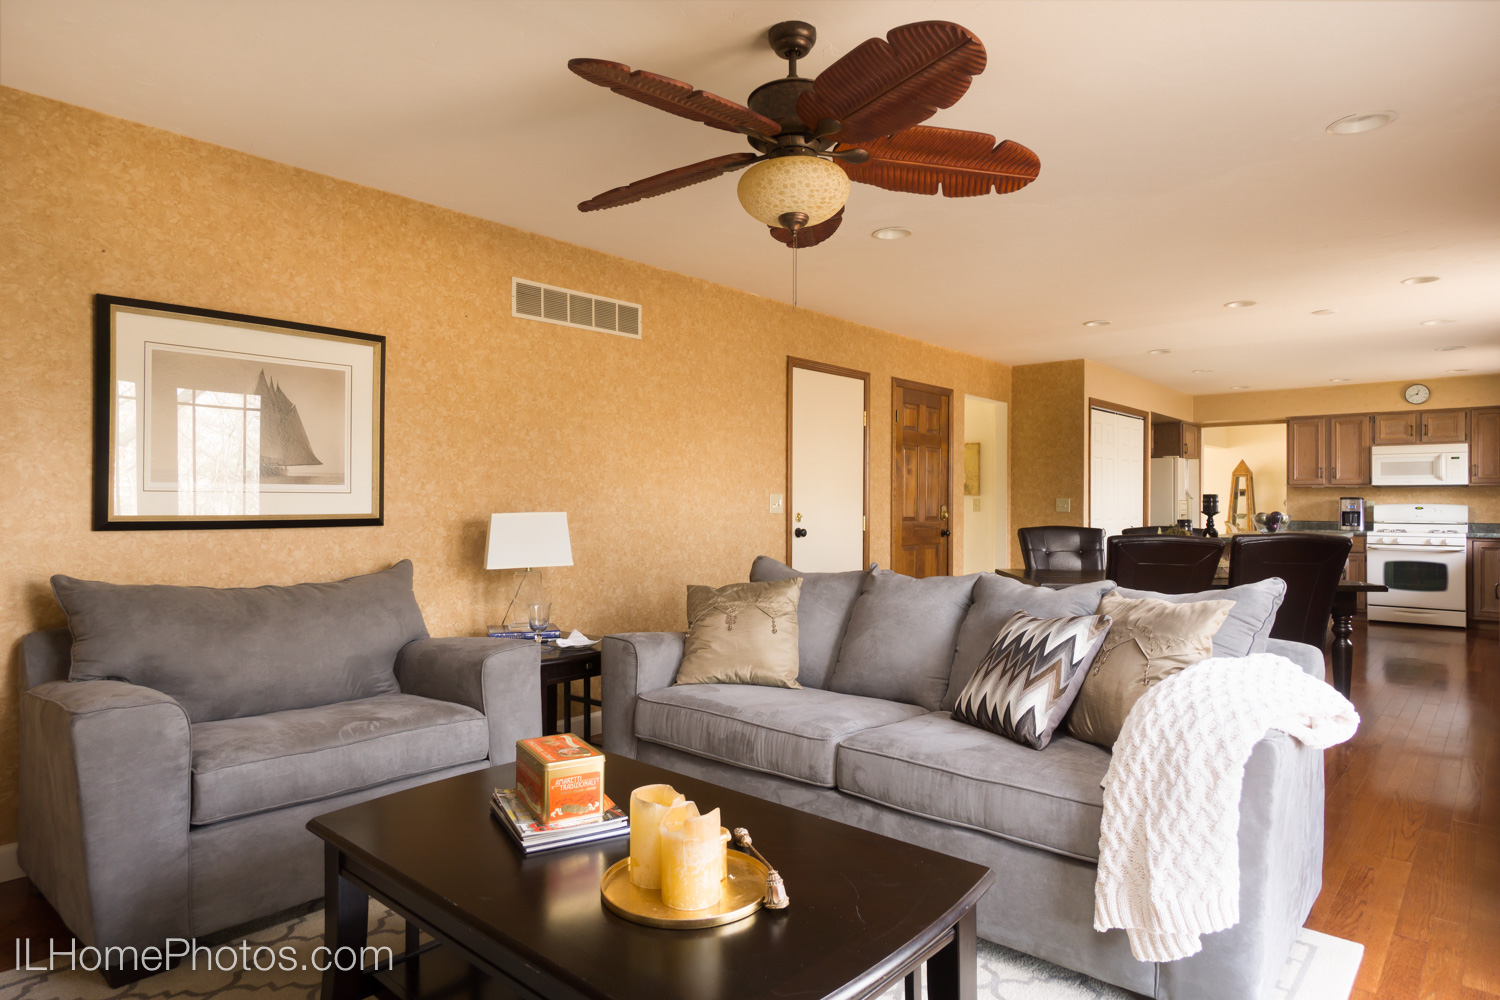 Interior family room photograph for real estate in Dunlap, IL :: Illinois Home Photography by Michael Gowin, Lincoln, IL